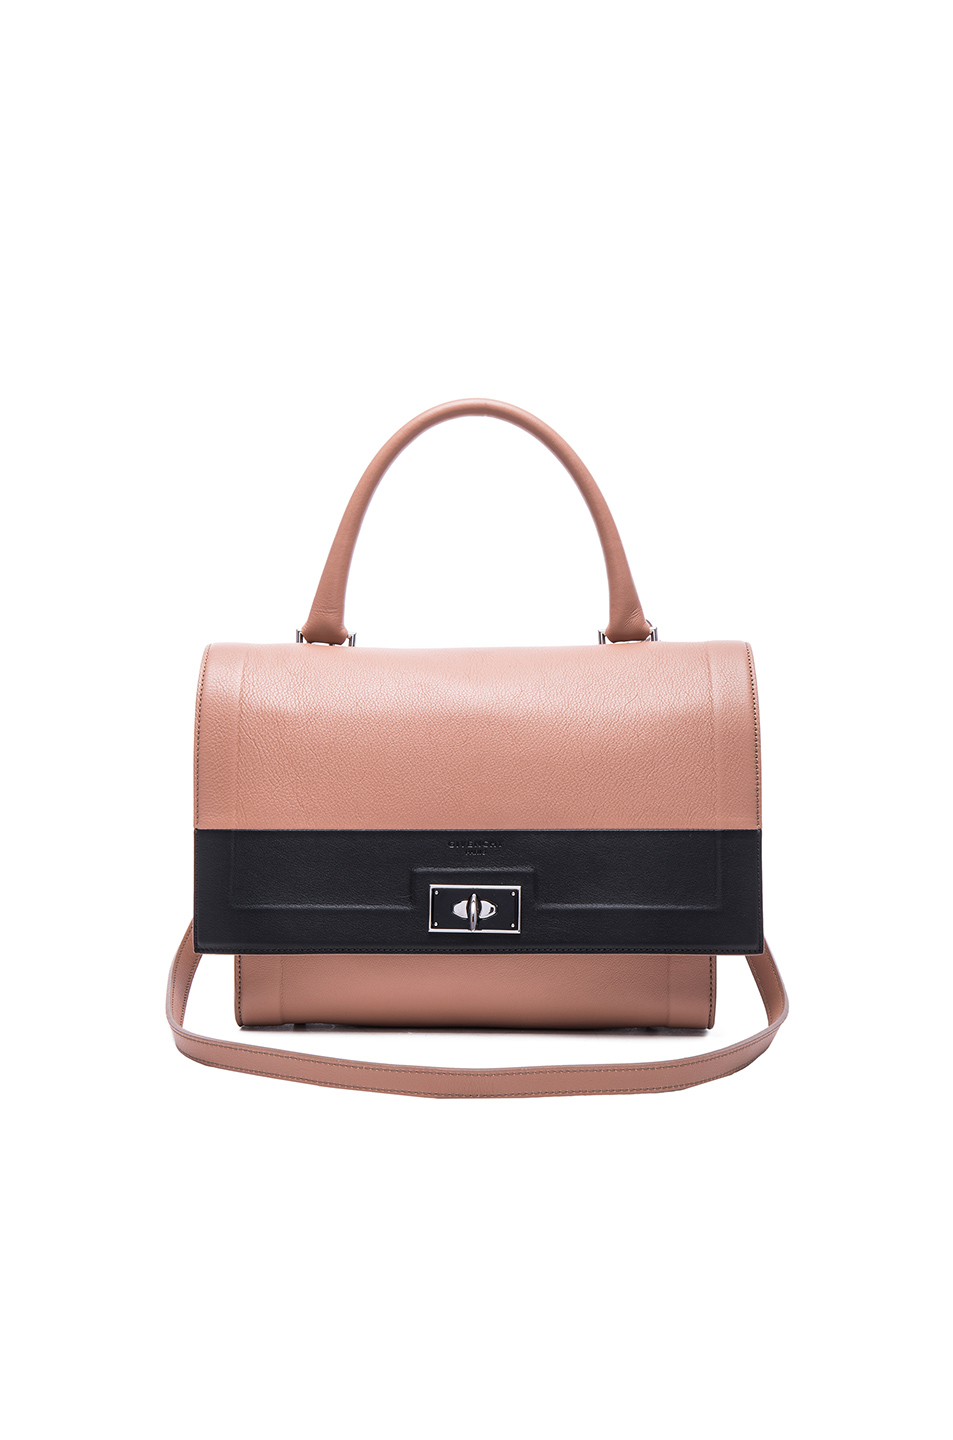 Lyst - Givenchy Small Contrast Band Leather Shark Bag in Pink 22bf1e3916f60